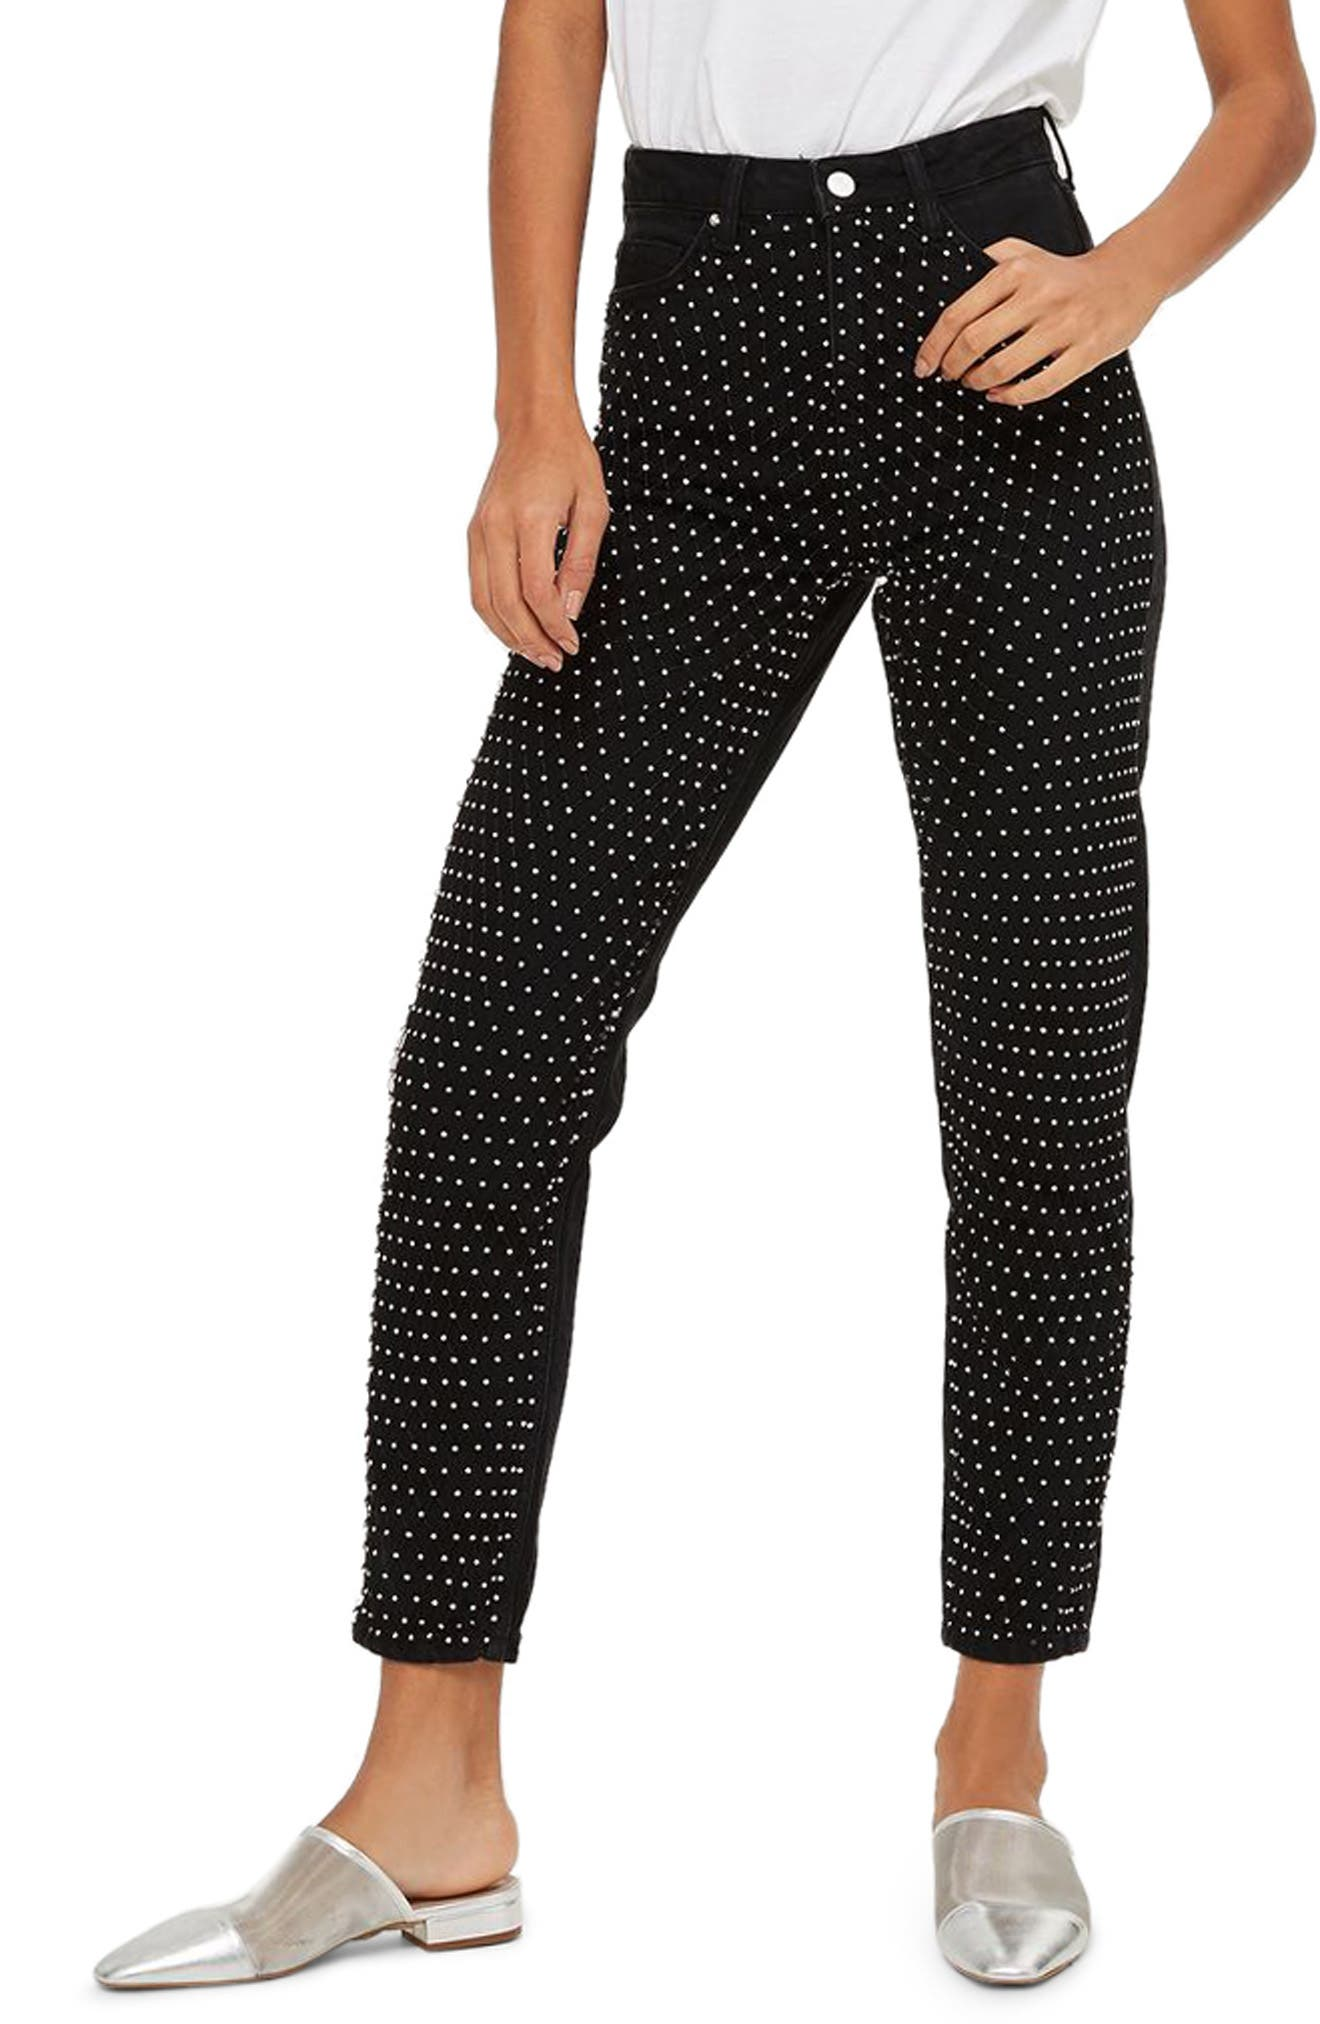 Topshop Limited Edition Diamante Fishnet Mom Jeans